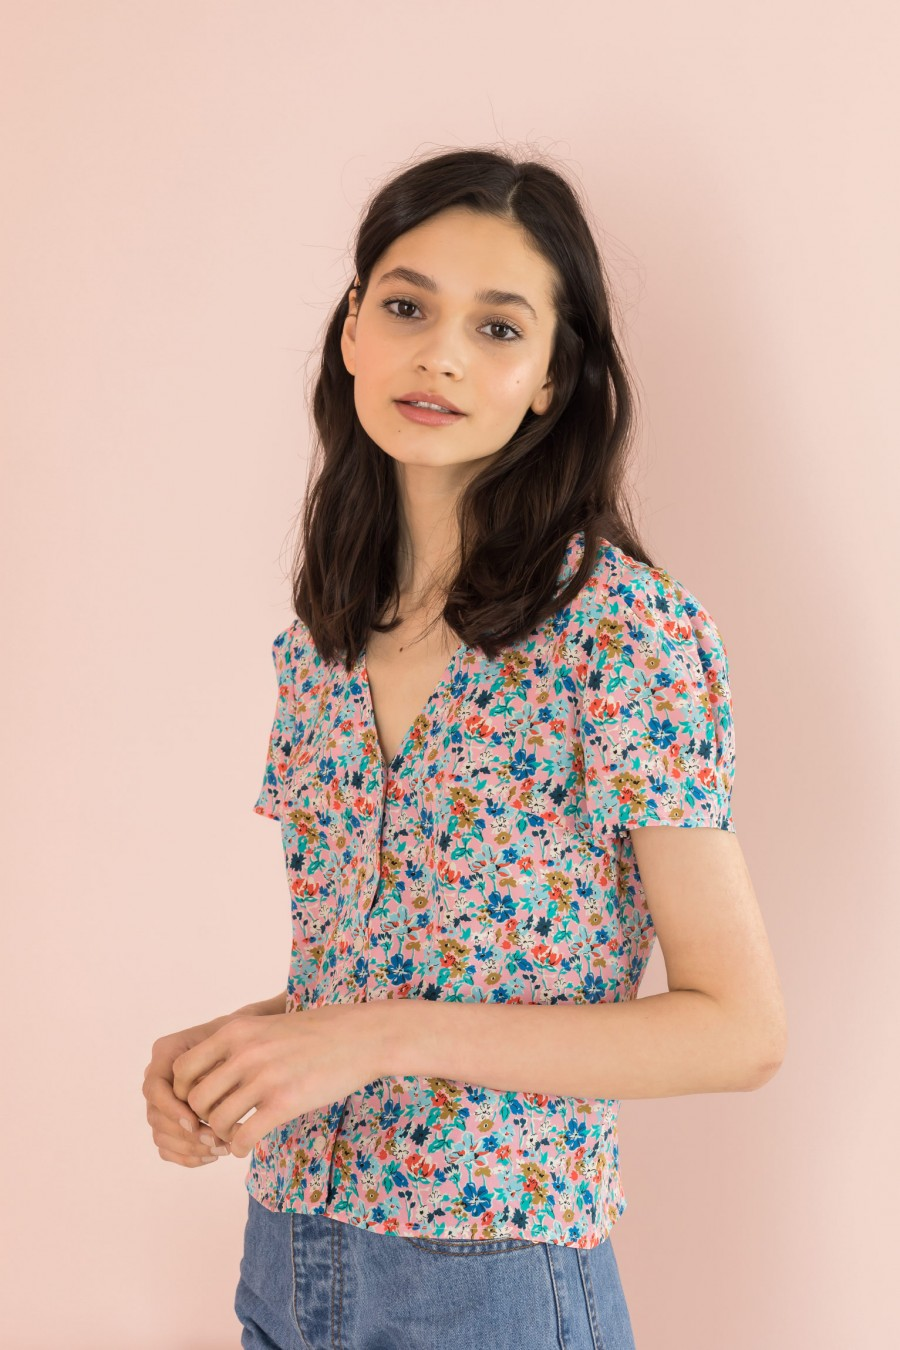 silk shirt with pattern on pink background